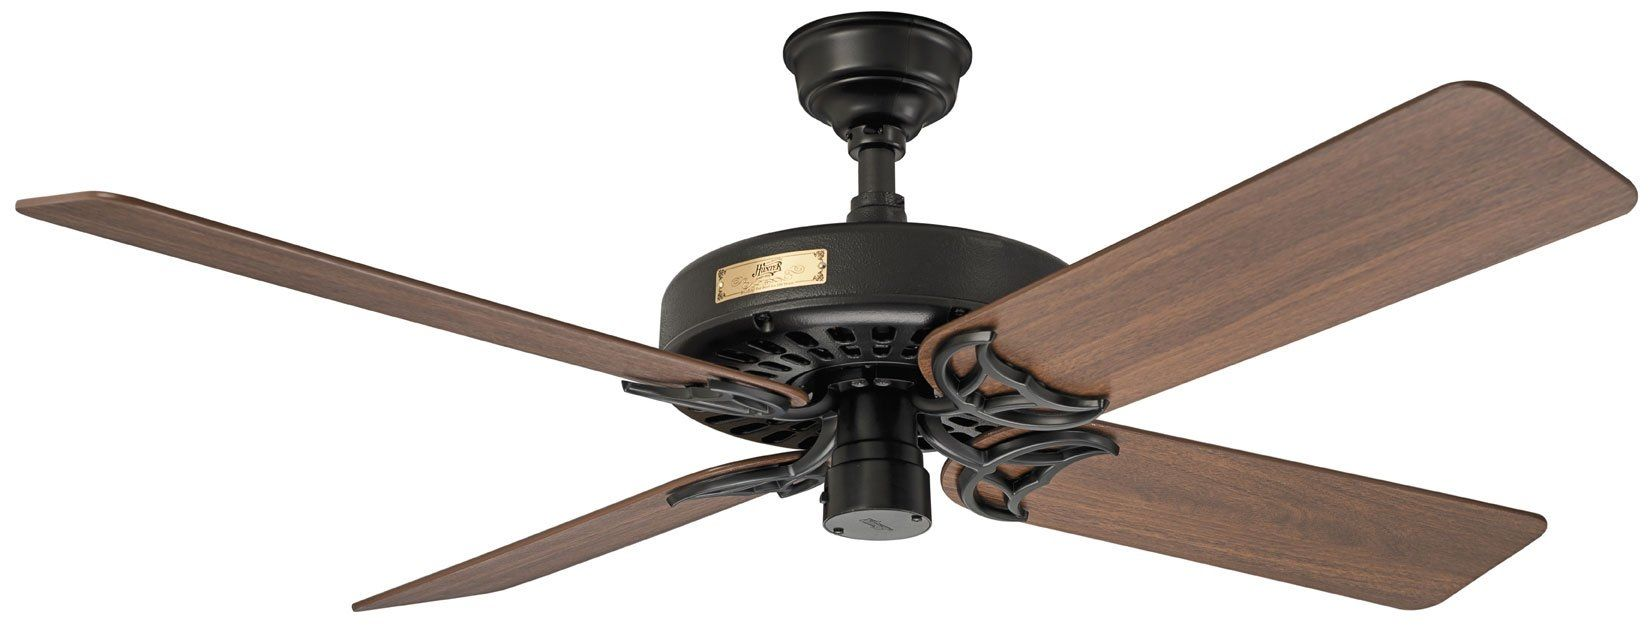 Hunter savoy 52 ceiling fan httponlinecompliancefo ceiling hunter savoy 52 ceiling fan aloadofball Image collections